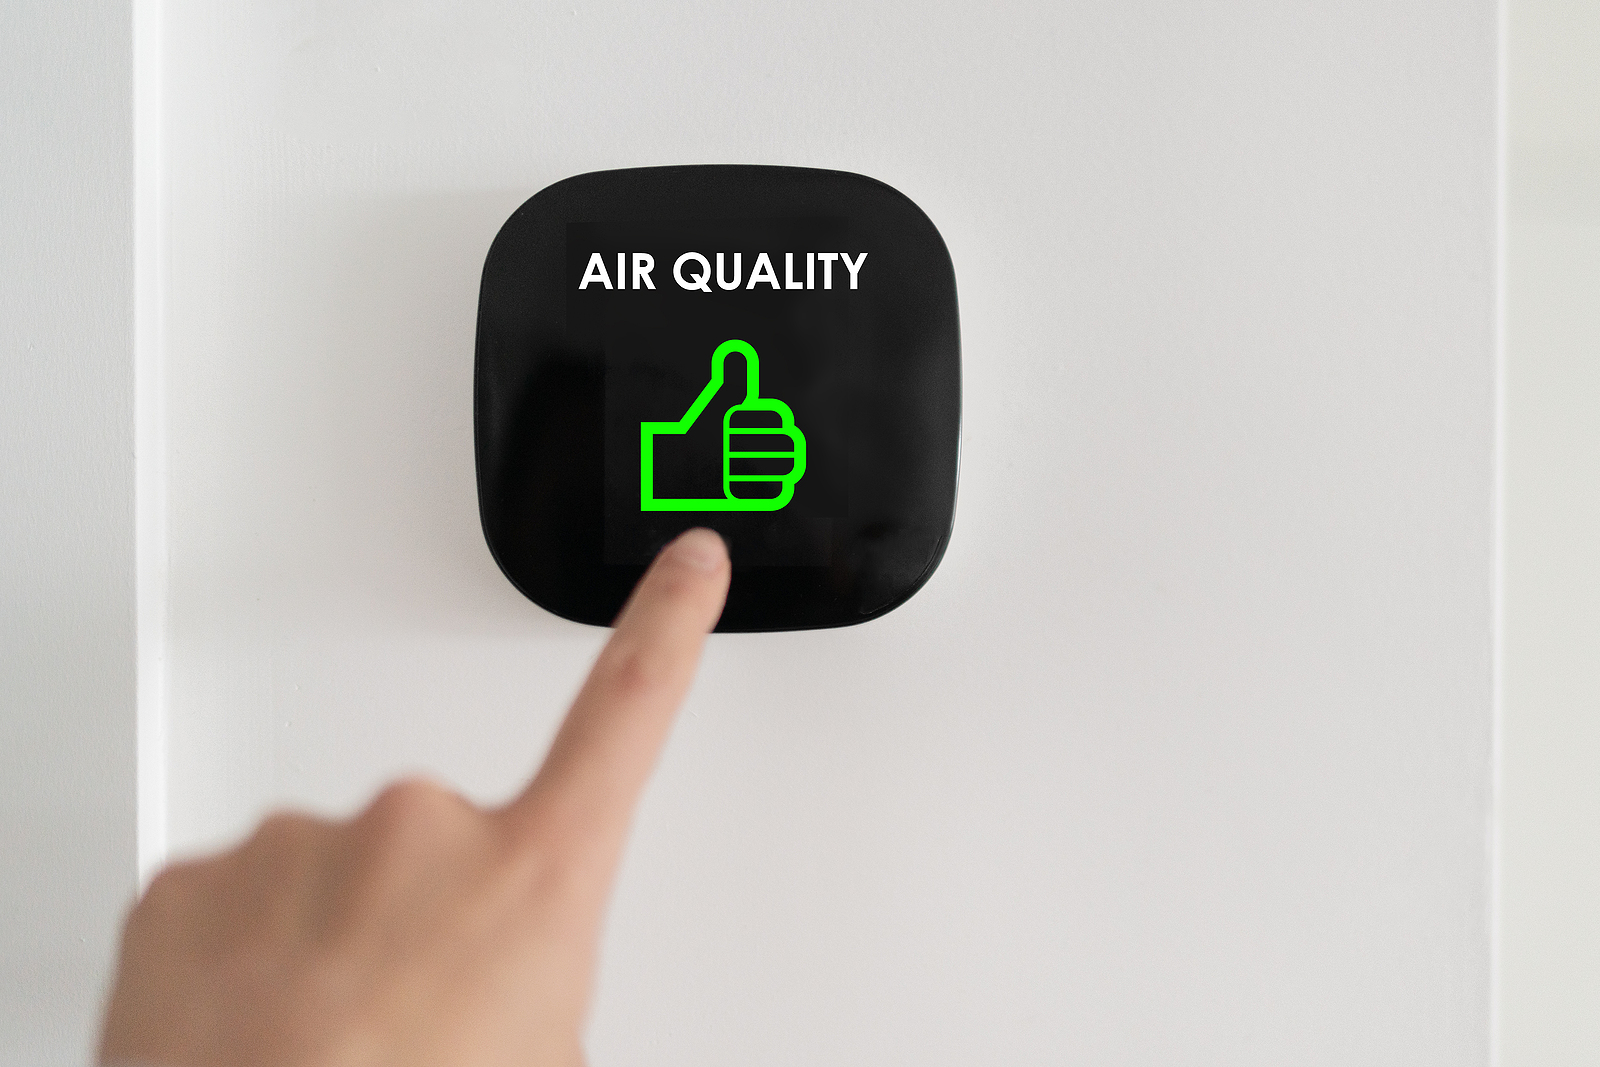 How to Improve Indoor Air Quality: 5 Important Things You Can Do